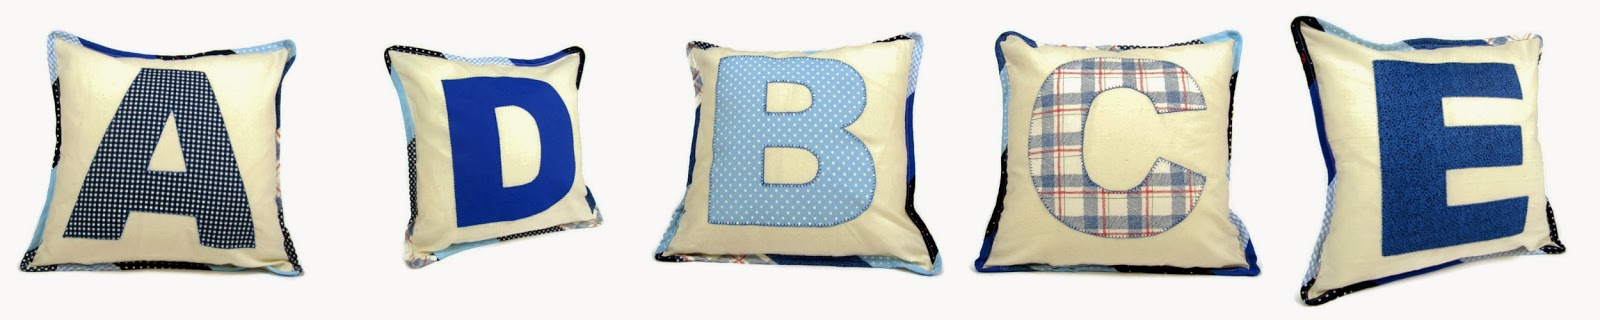 Blue monogram pillows ByElsieB